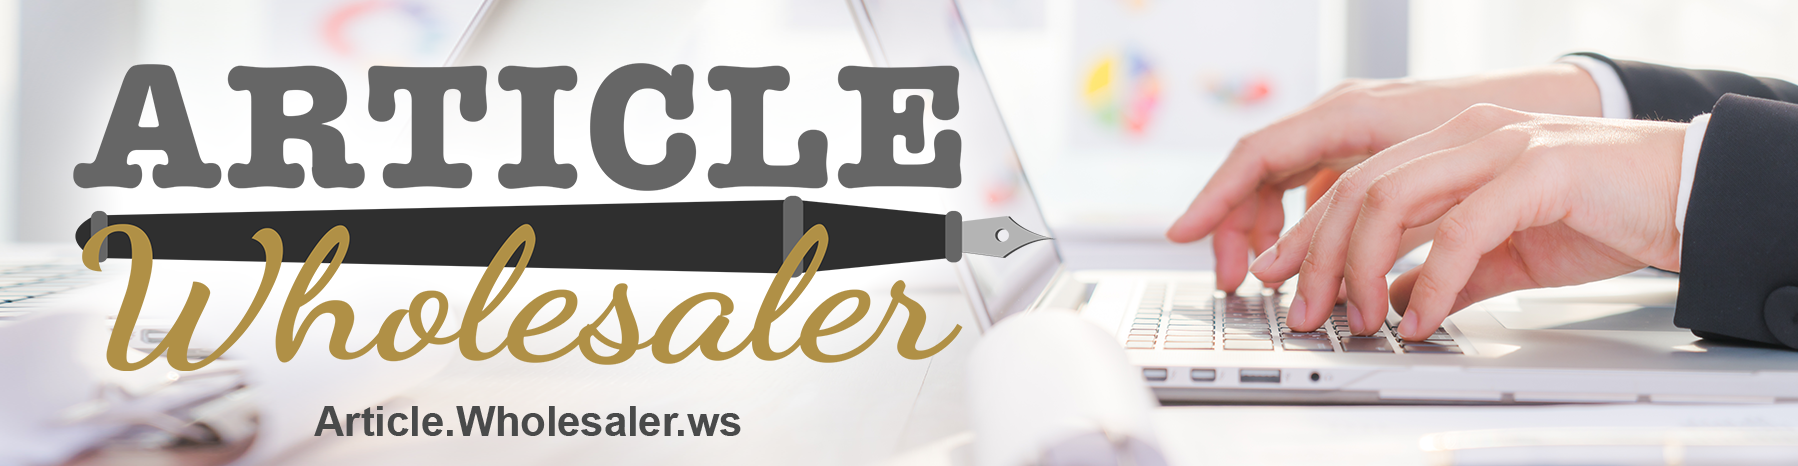 Article Wholesaler header image